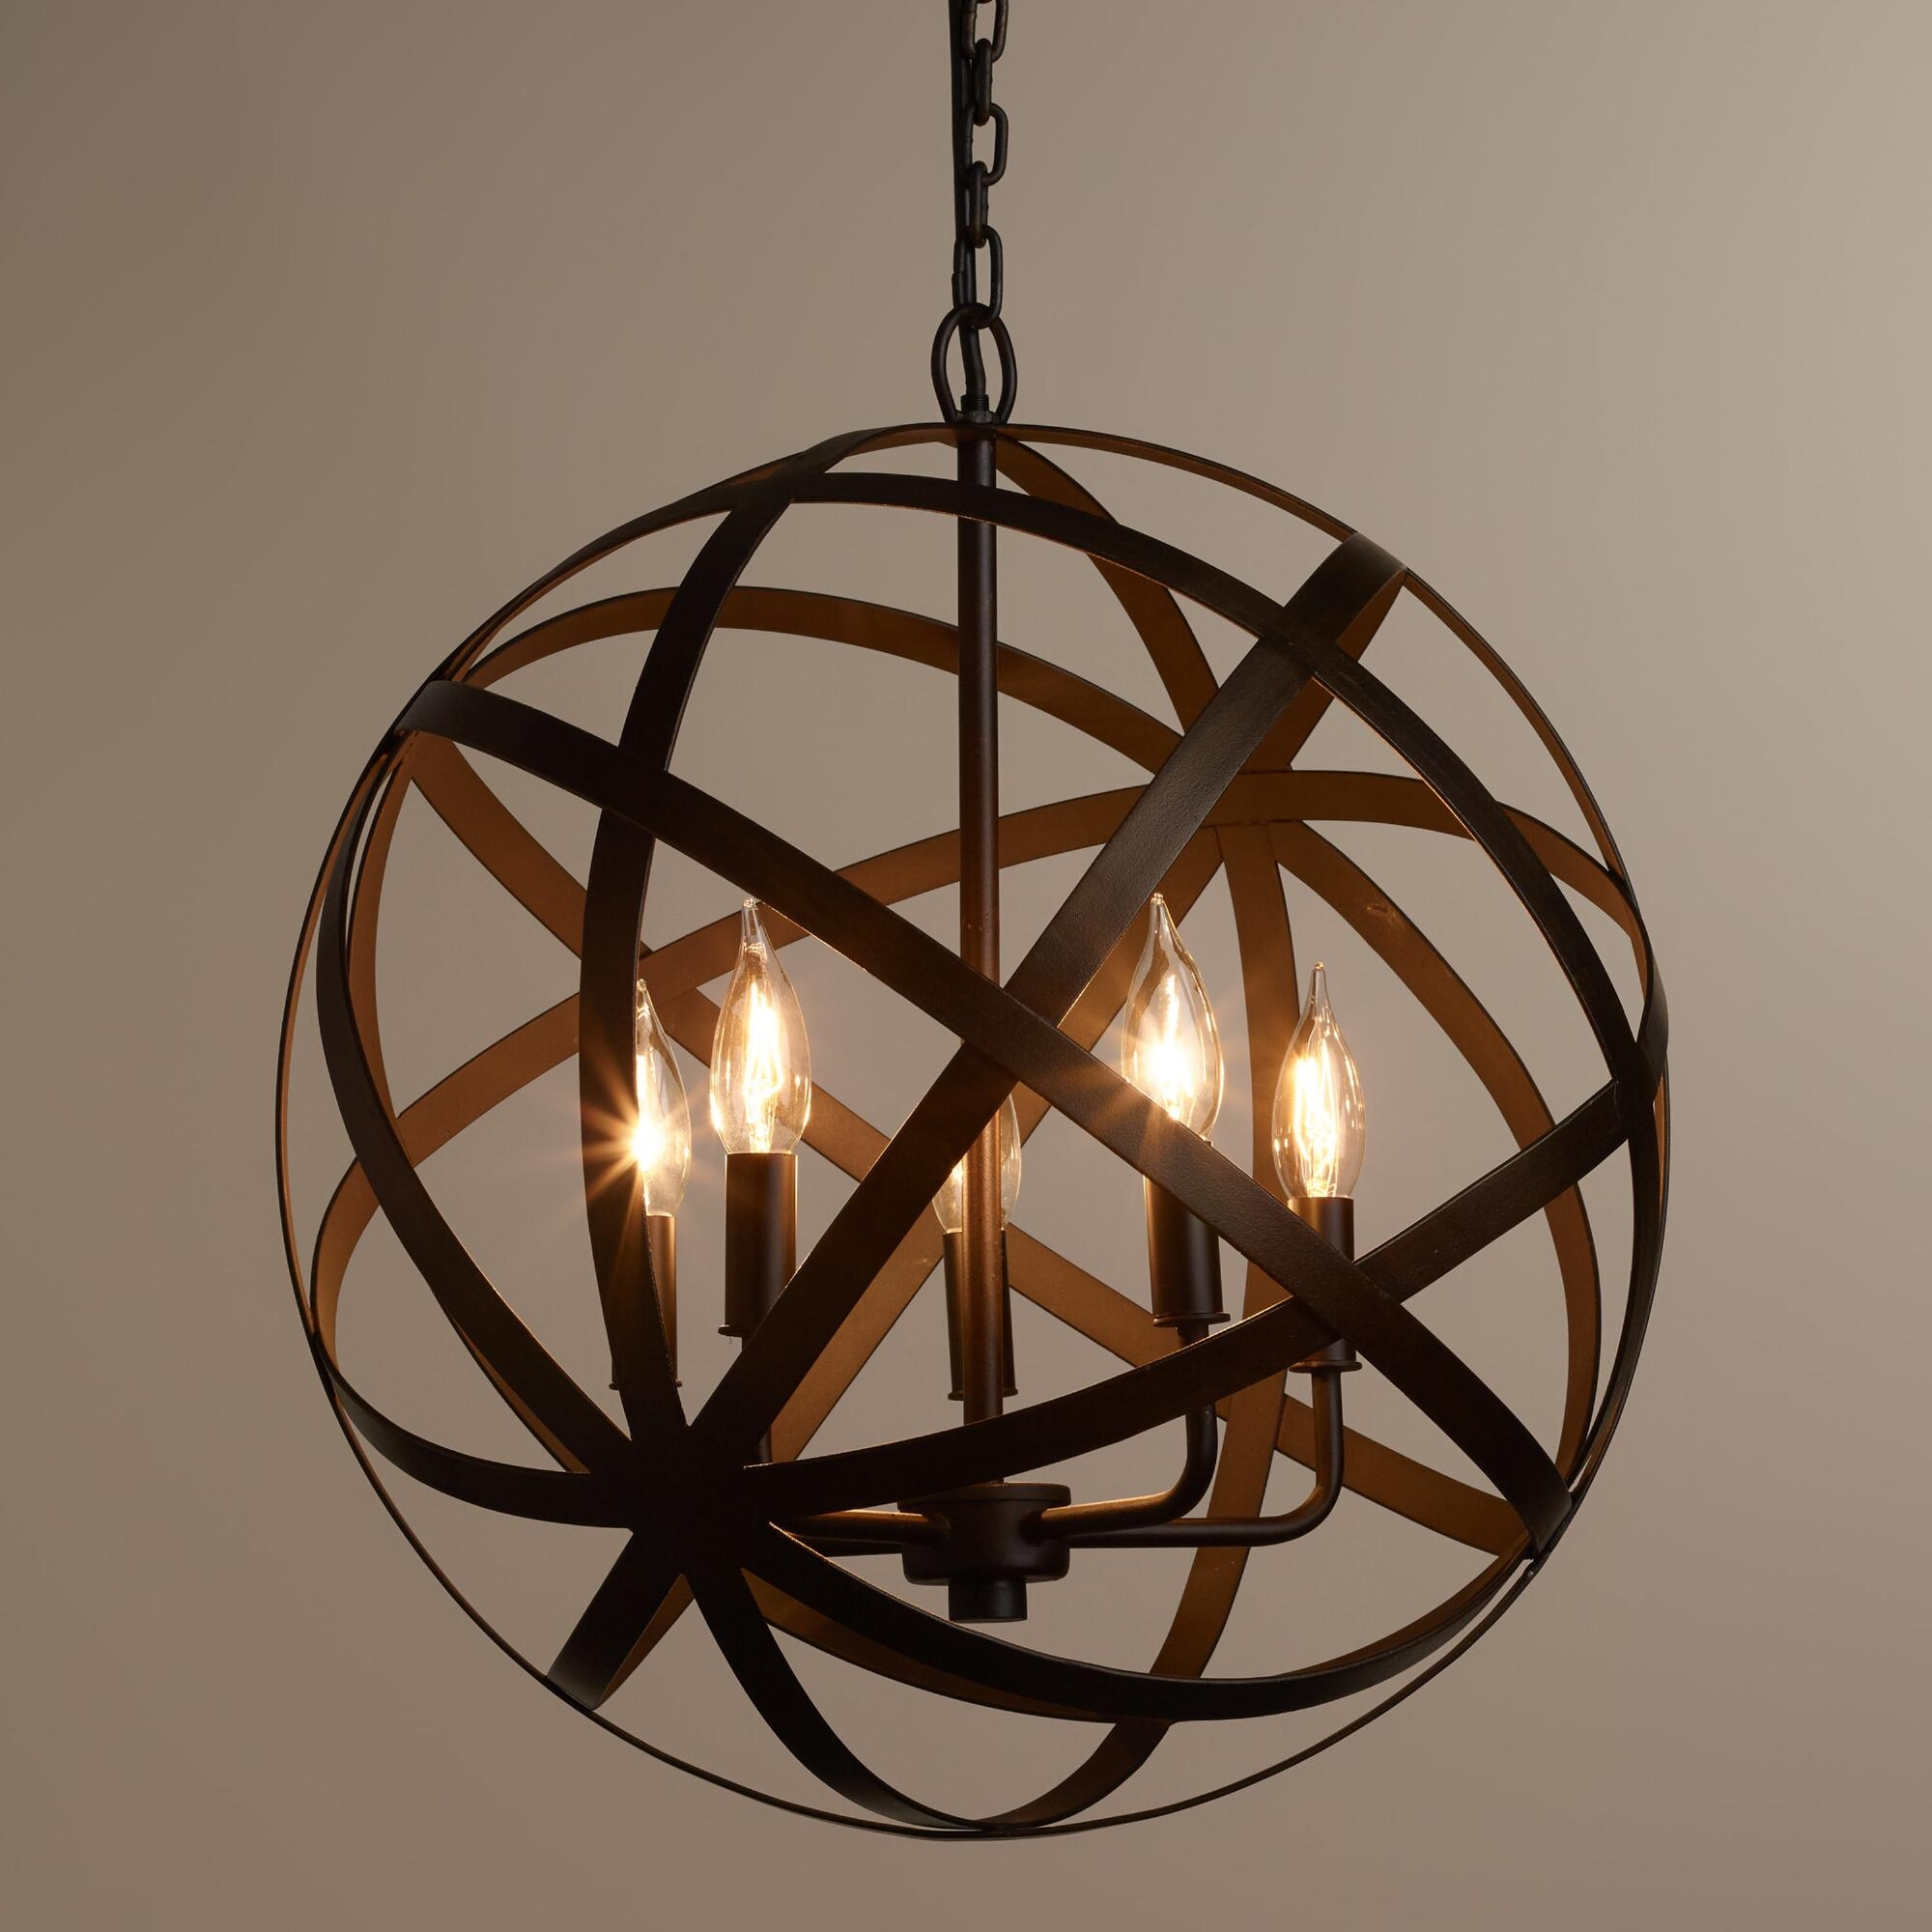 Popular Photo of Sphere Chandelier